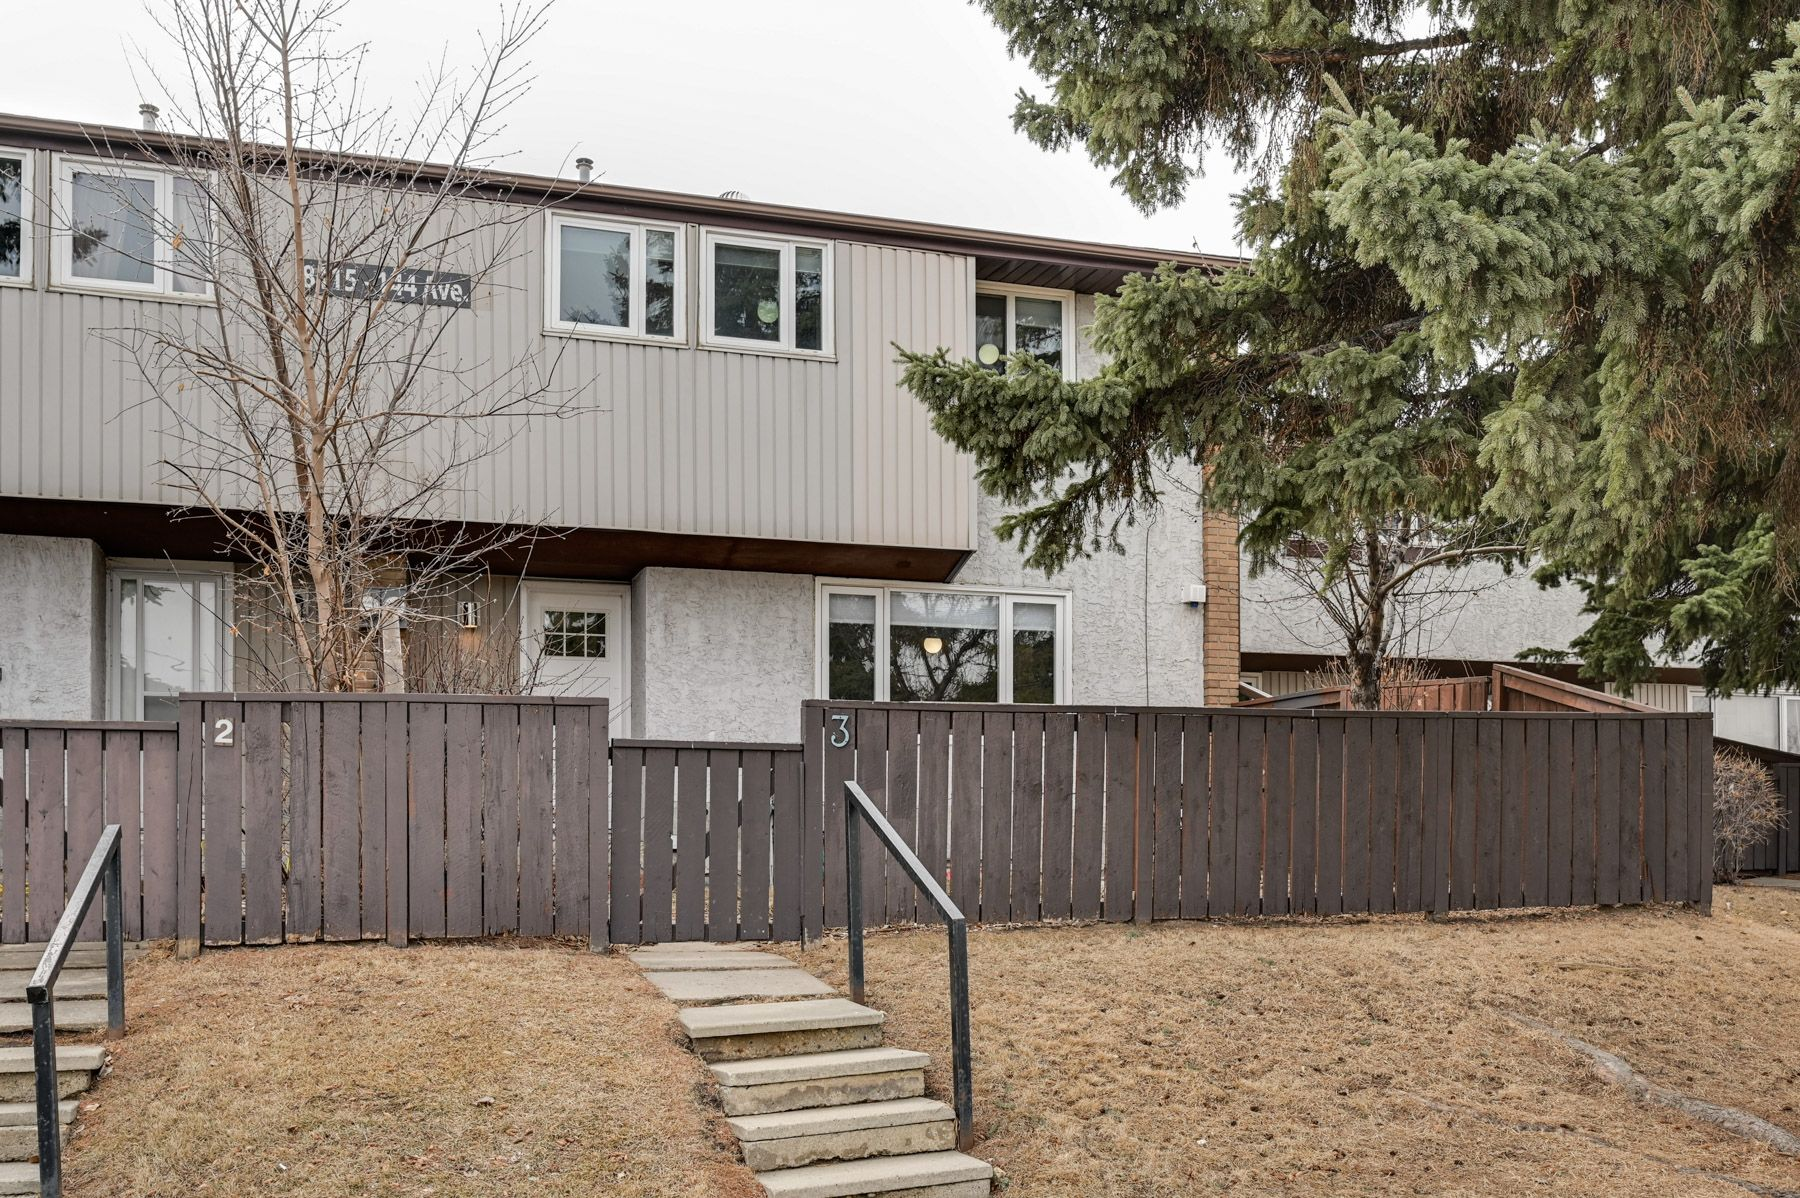 Main Photo: #3, 8115 144 Ave NW: Edmonton Townhouse for sale : MLS®# E4235047